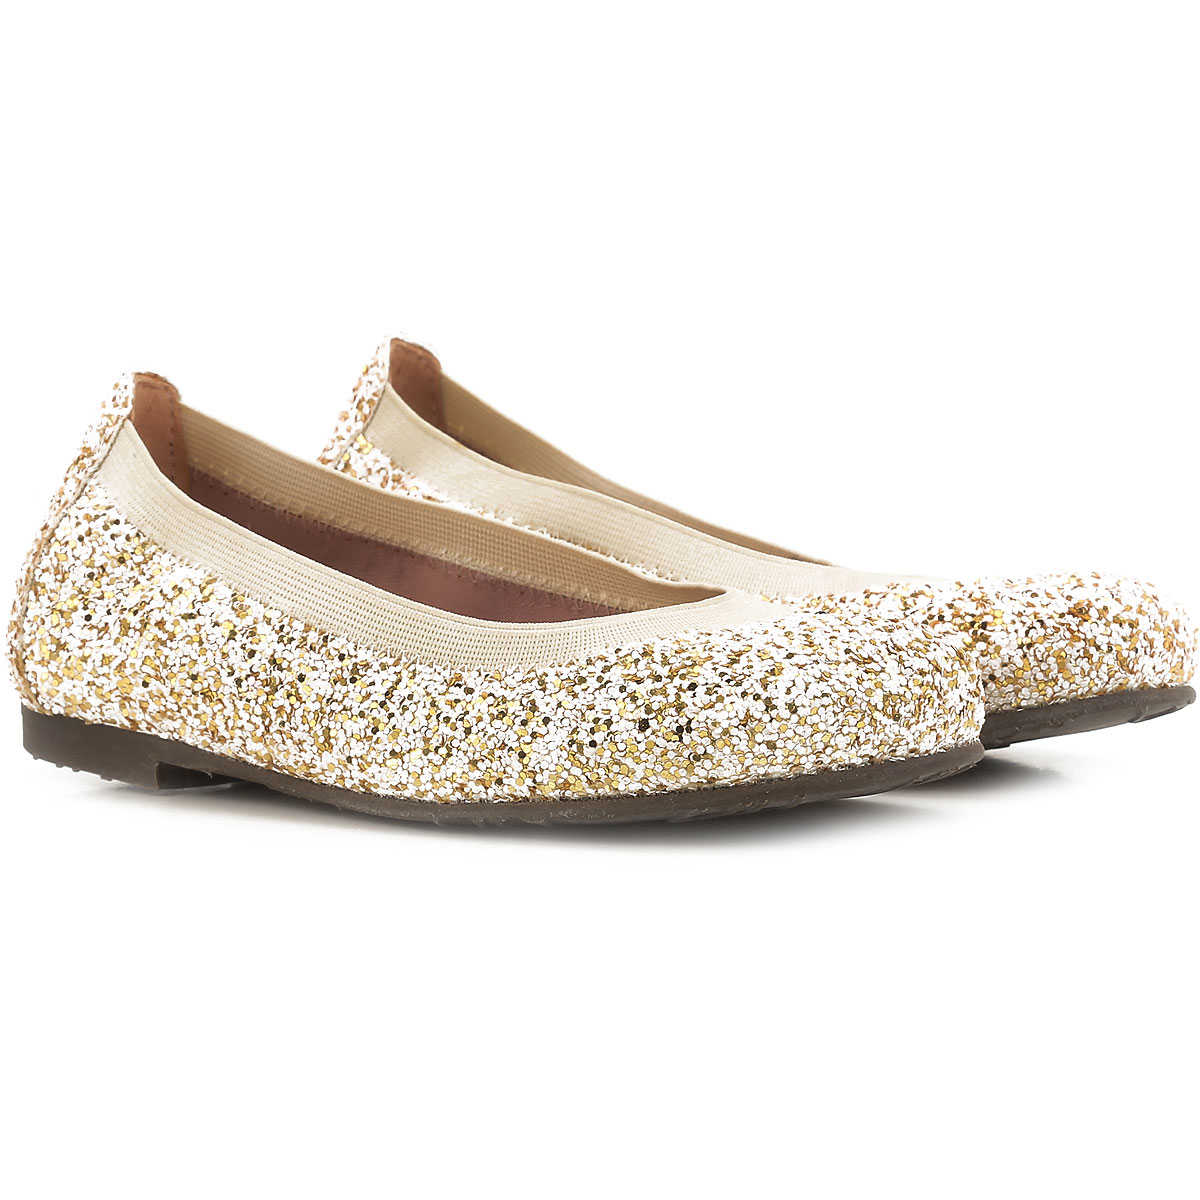 Pretty Ballerinas Kids Shoes for Girls in Outlet Cream USA - GOOFASH